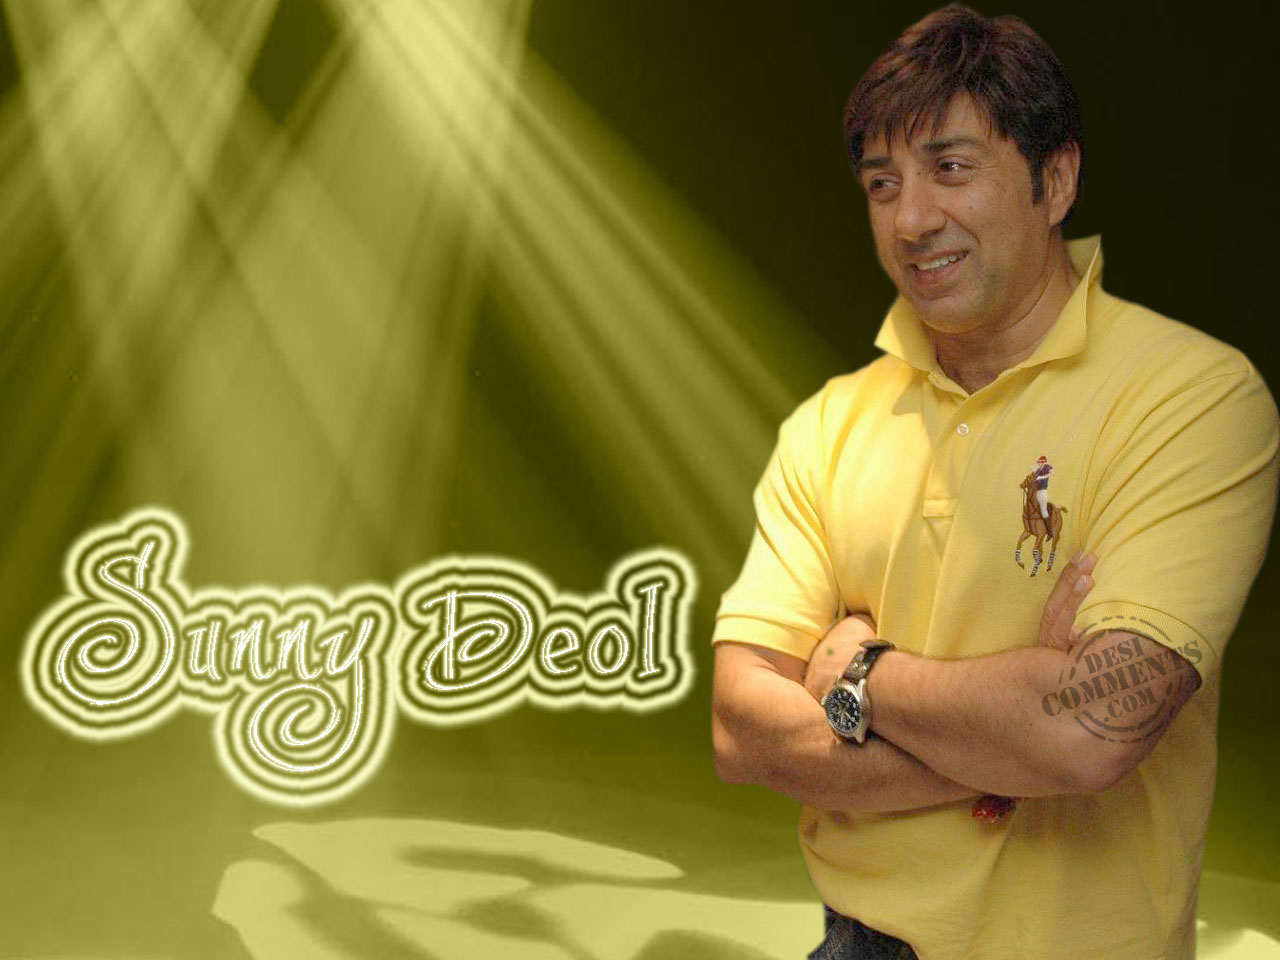 Love Hd Wallpaper With Quotes In Hindi Sunny Deol Wallpapers Bollywood Wallpapers